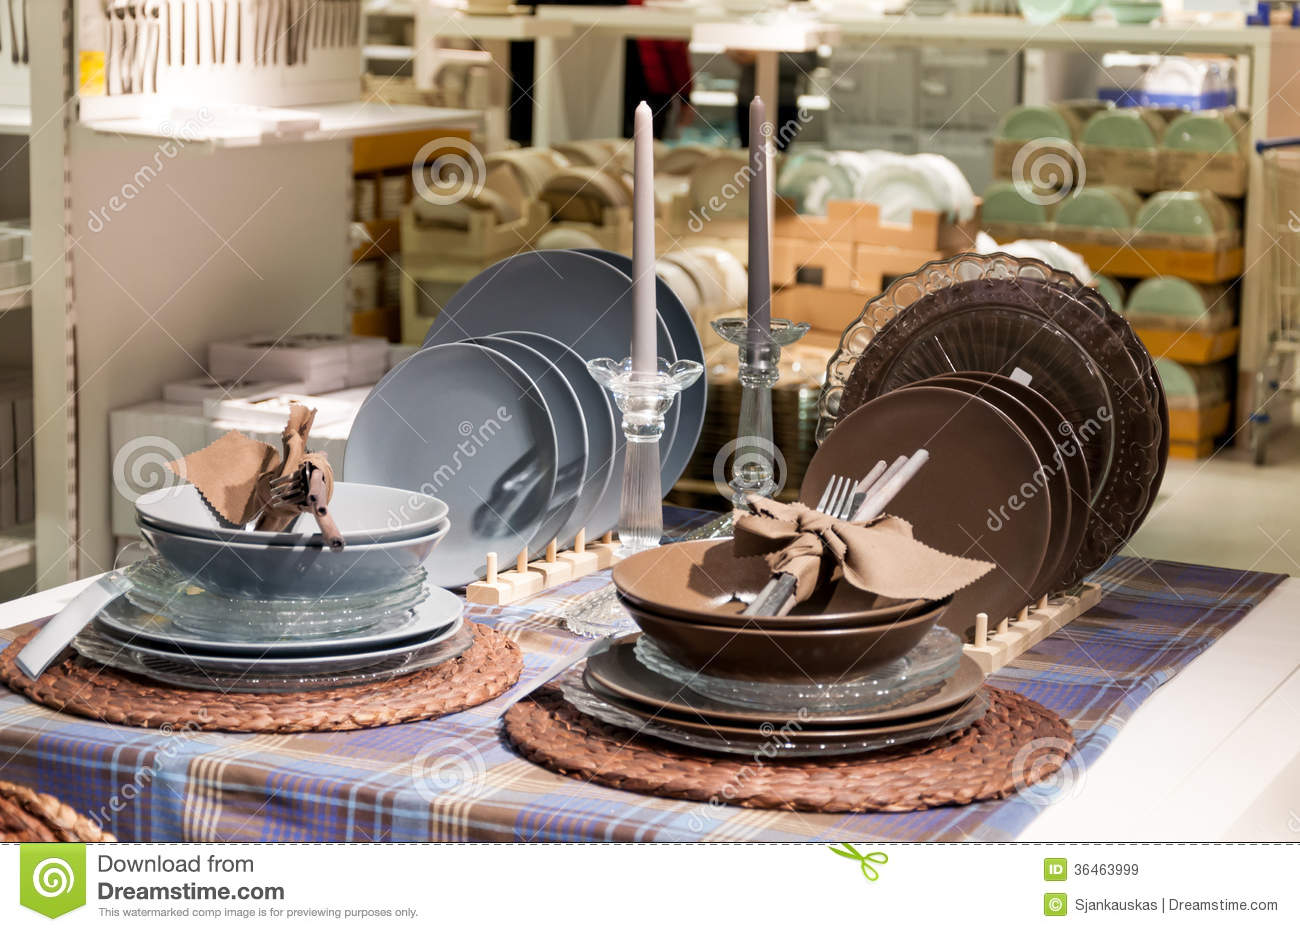 Lovely Dishware And Home Decor Store